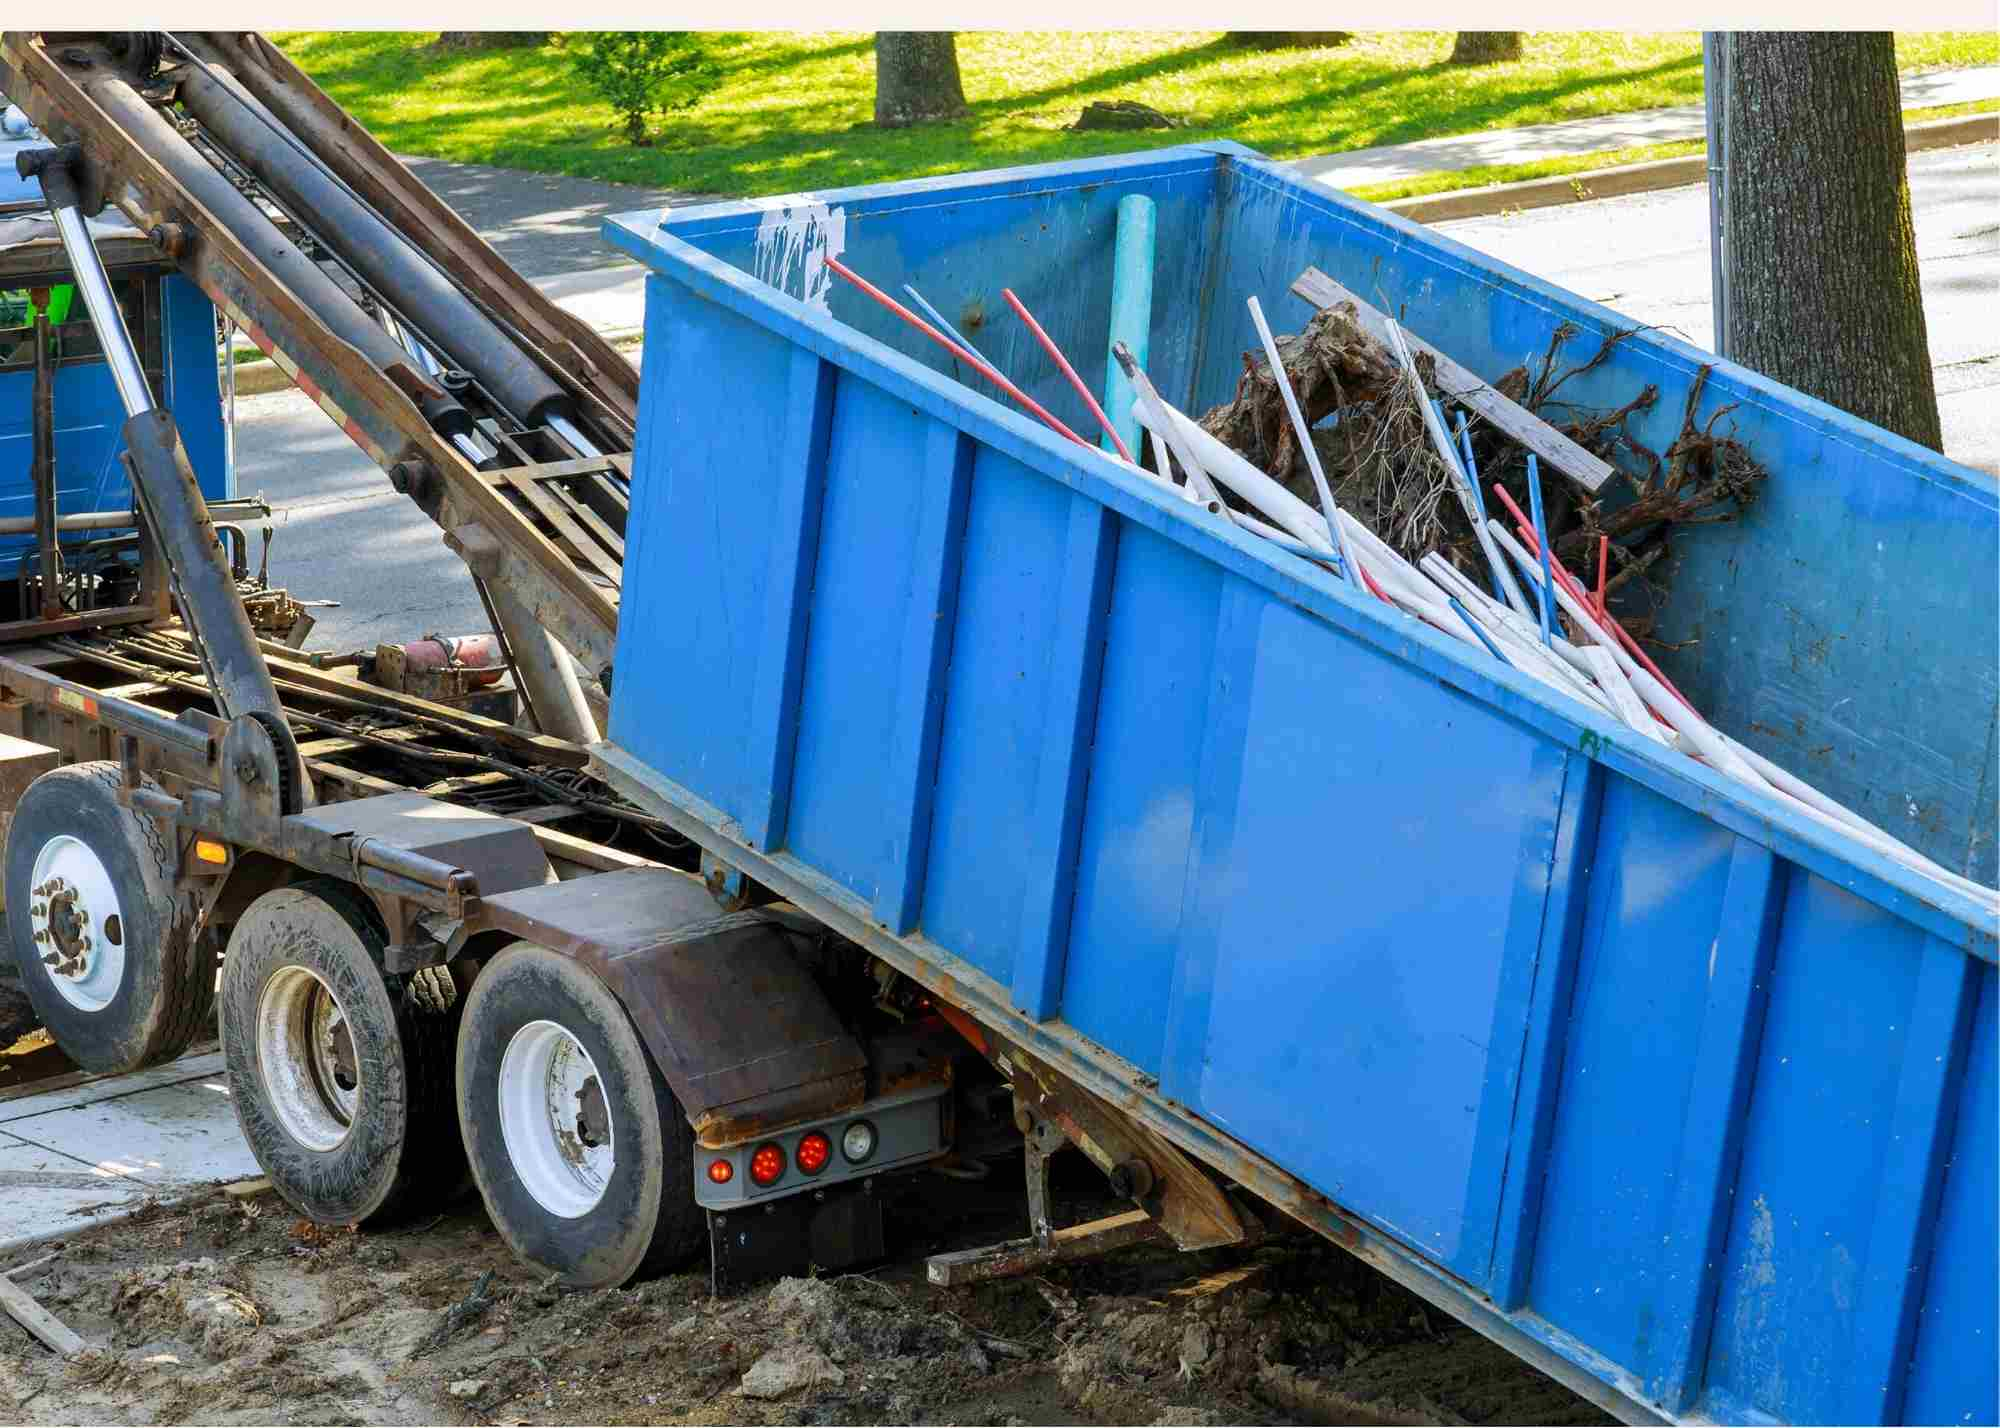 On this image you see a dumpster rental Brooklyn team is delivering a 30 yard dumpster to our client's site project. Client is doing a full renovation of the house and needed a dumpster for concrete and backyard work. The image was taken in January 2021